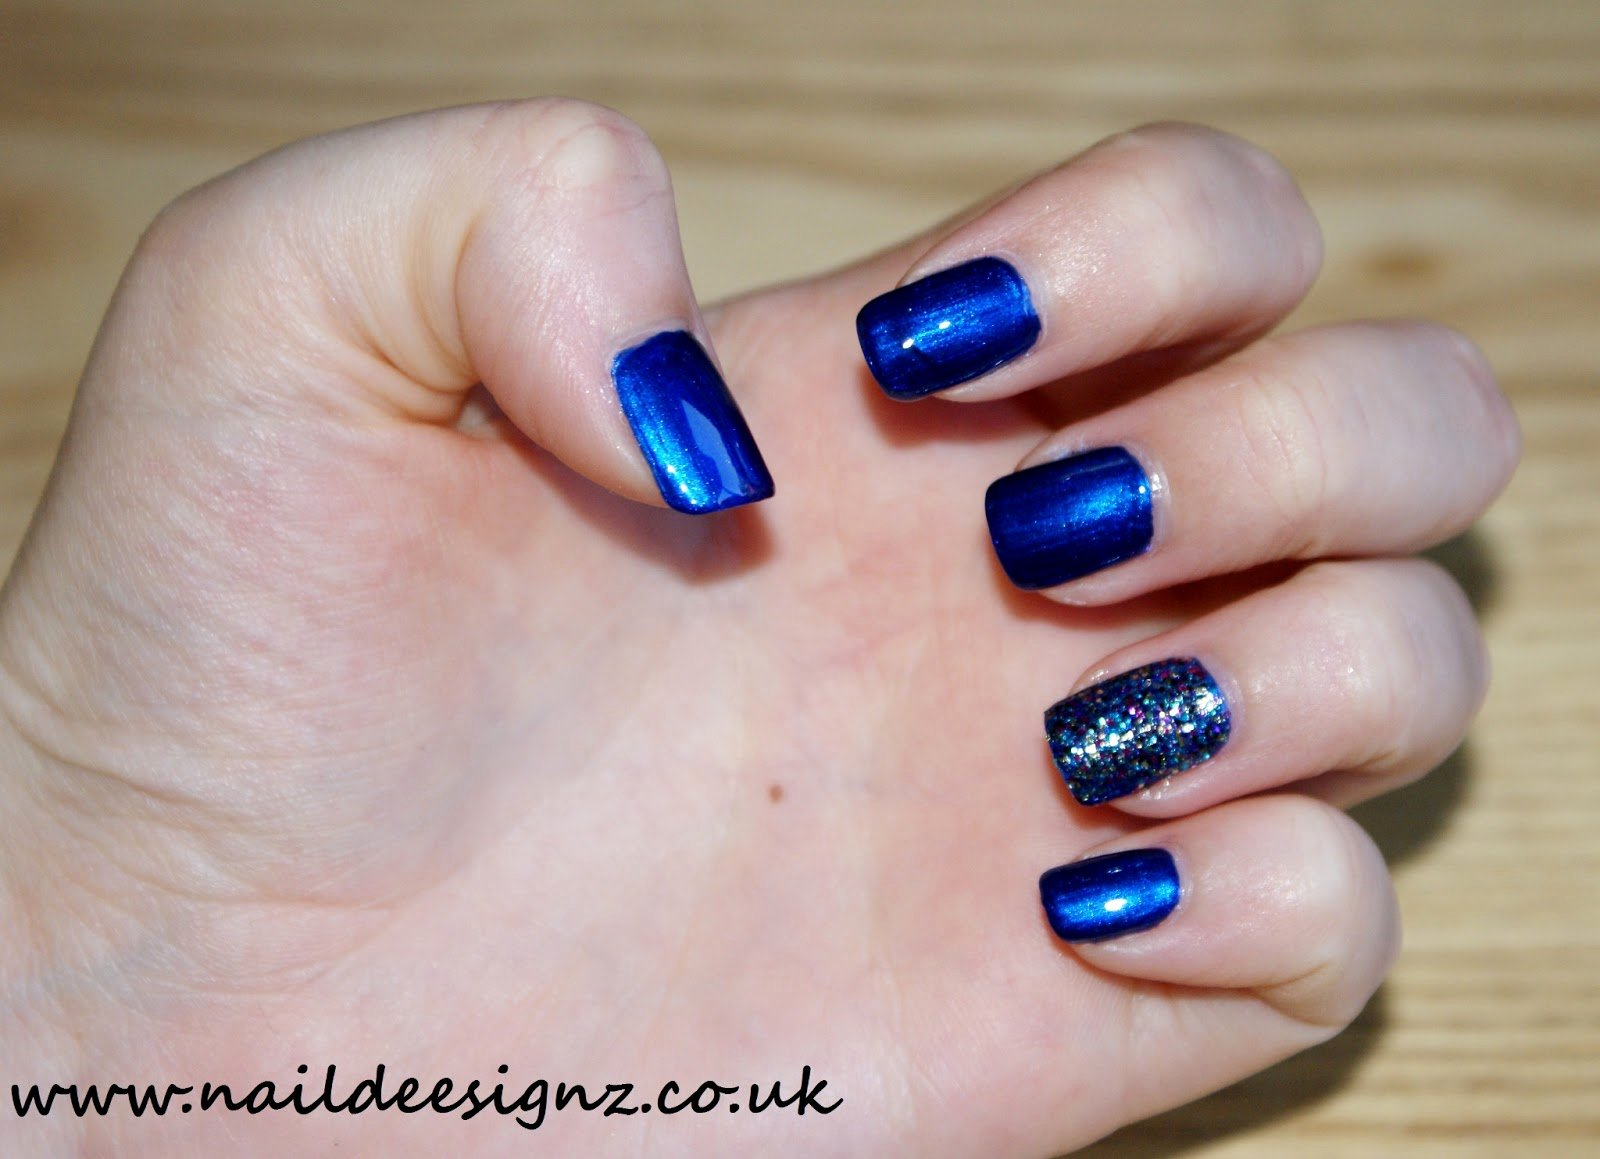 Blue Nail Polish Designs Awesome Naildeesignz Blue with Glitter Accent Nail